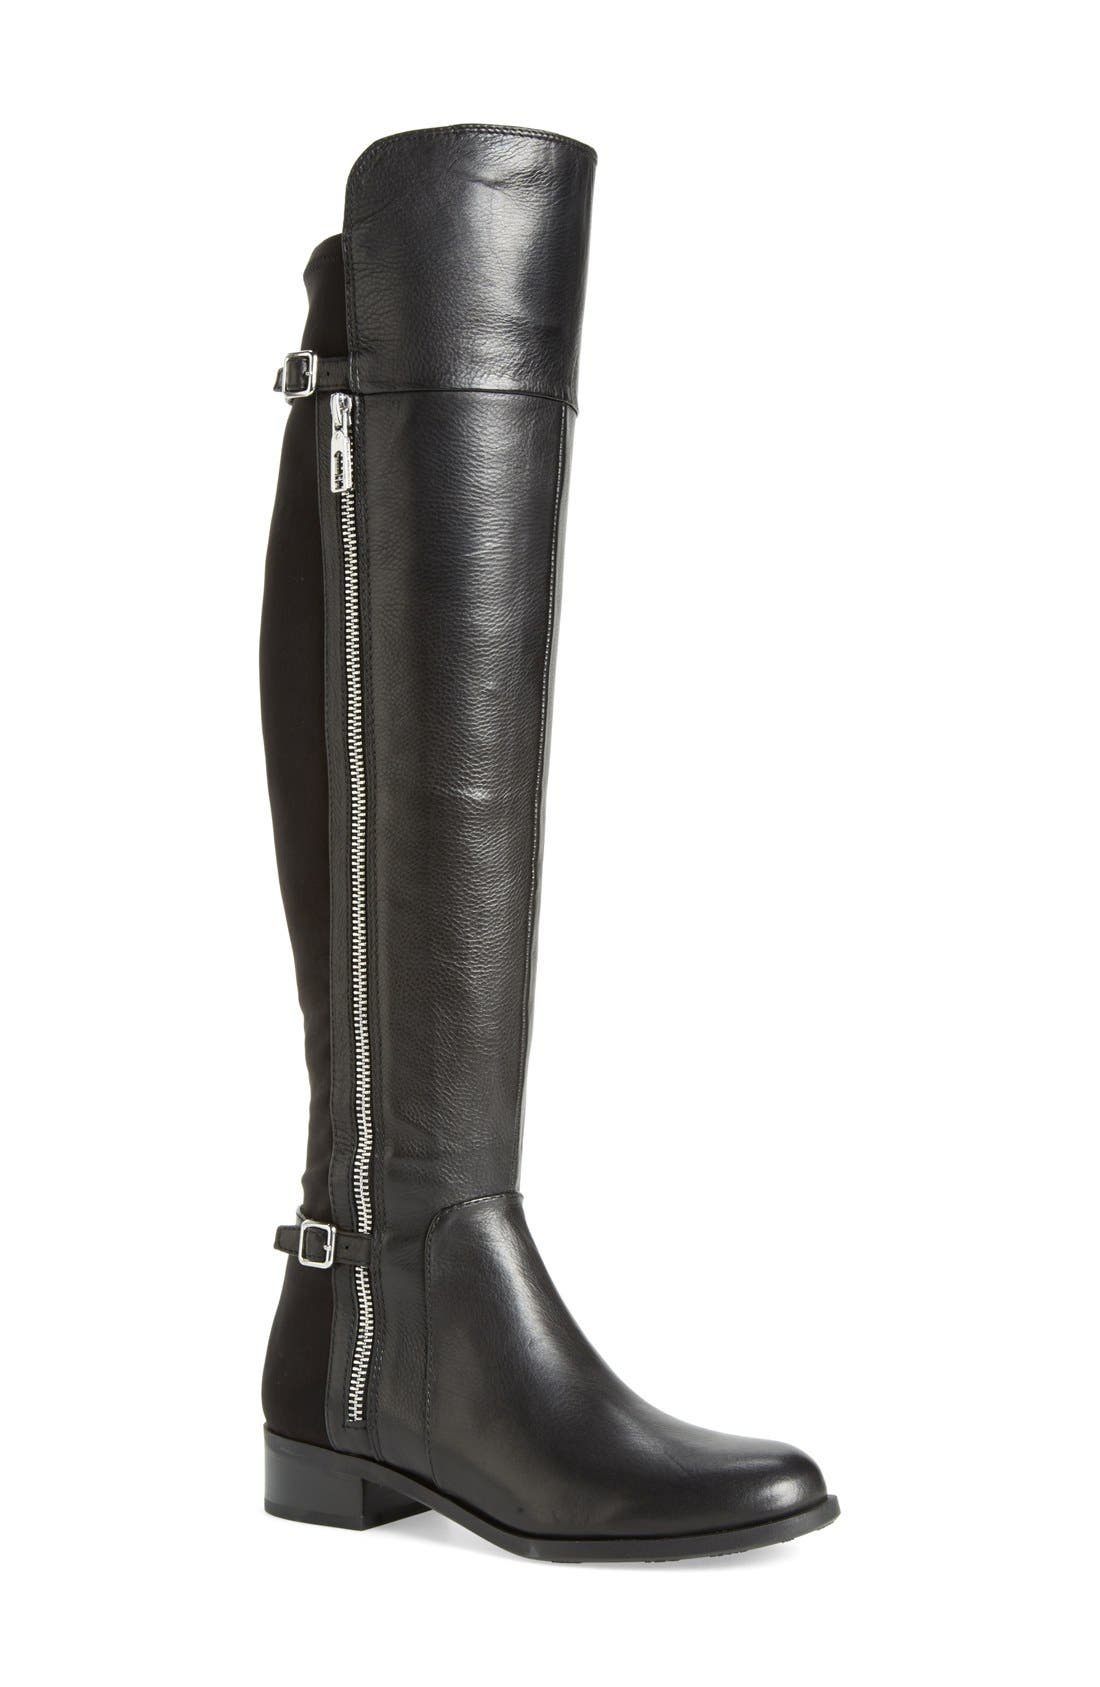 Alternate Image 1 Selected - Ivanka Trump 'Oliss' Over The Knee Boot (Women)